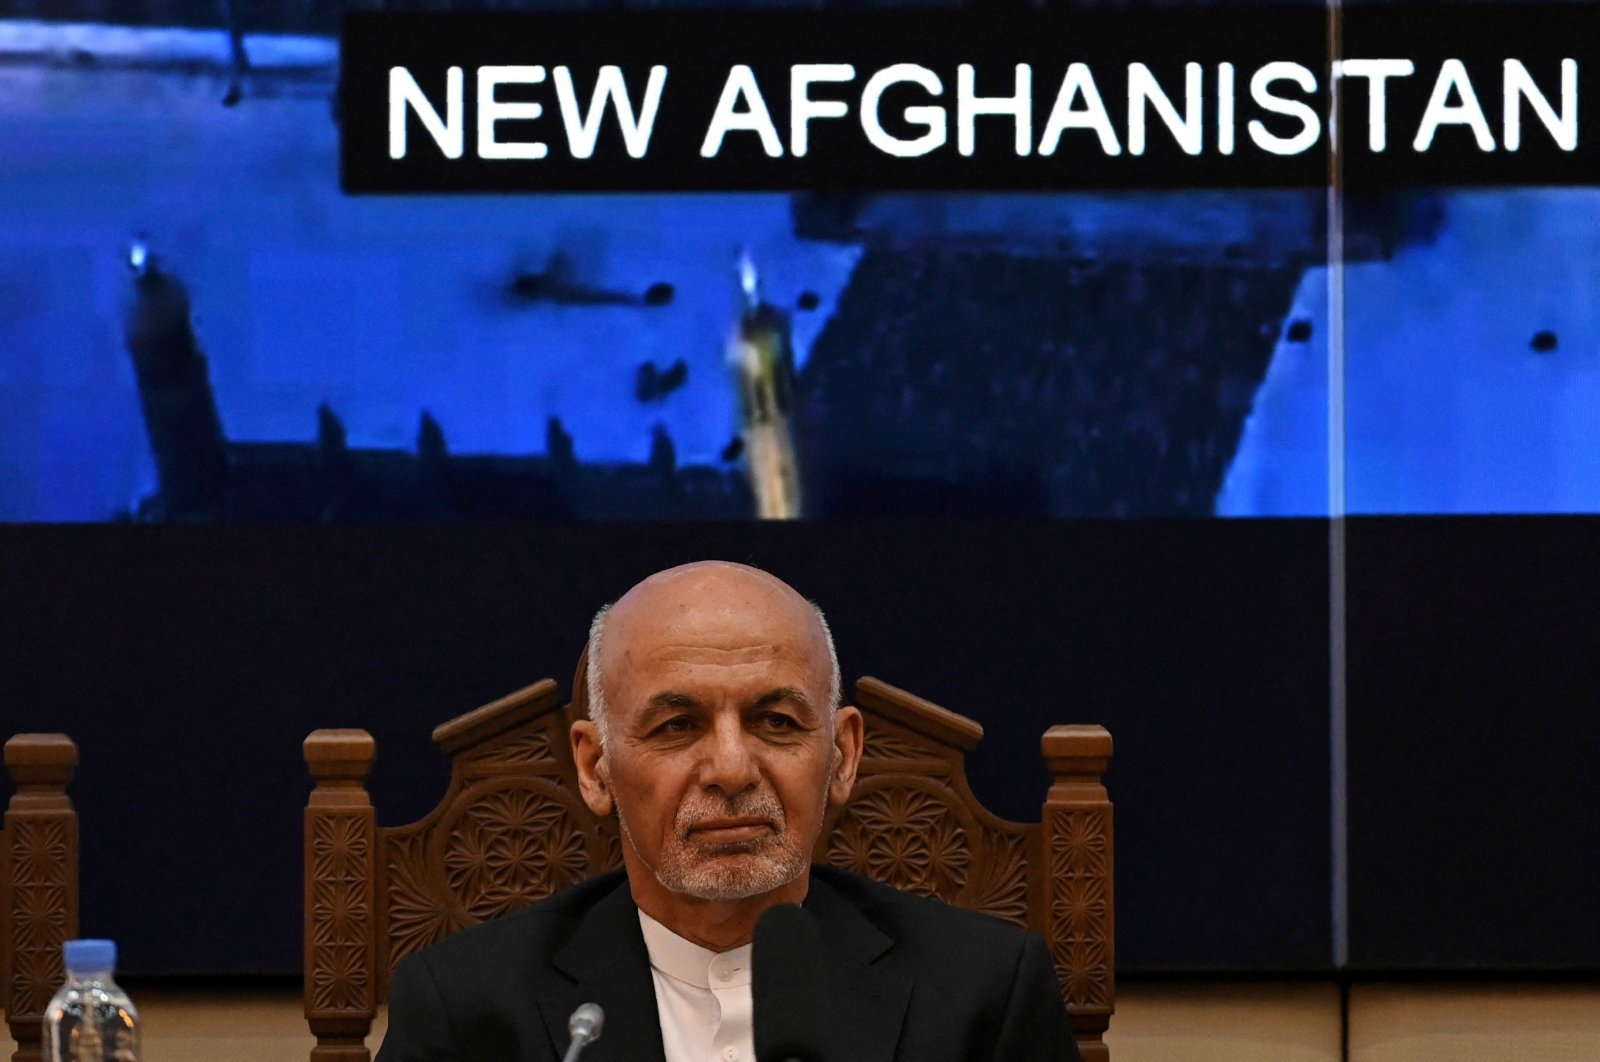 Afghanistan's President Ashraf Ghani looks on while attending a Joint Coordination and Monitoring Board meeting (JCMB) at the Afghan presidential palace in Kabul, July 28, 2021. (Photo by SAJJAD HUSSAIN / AFP)